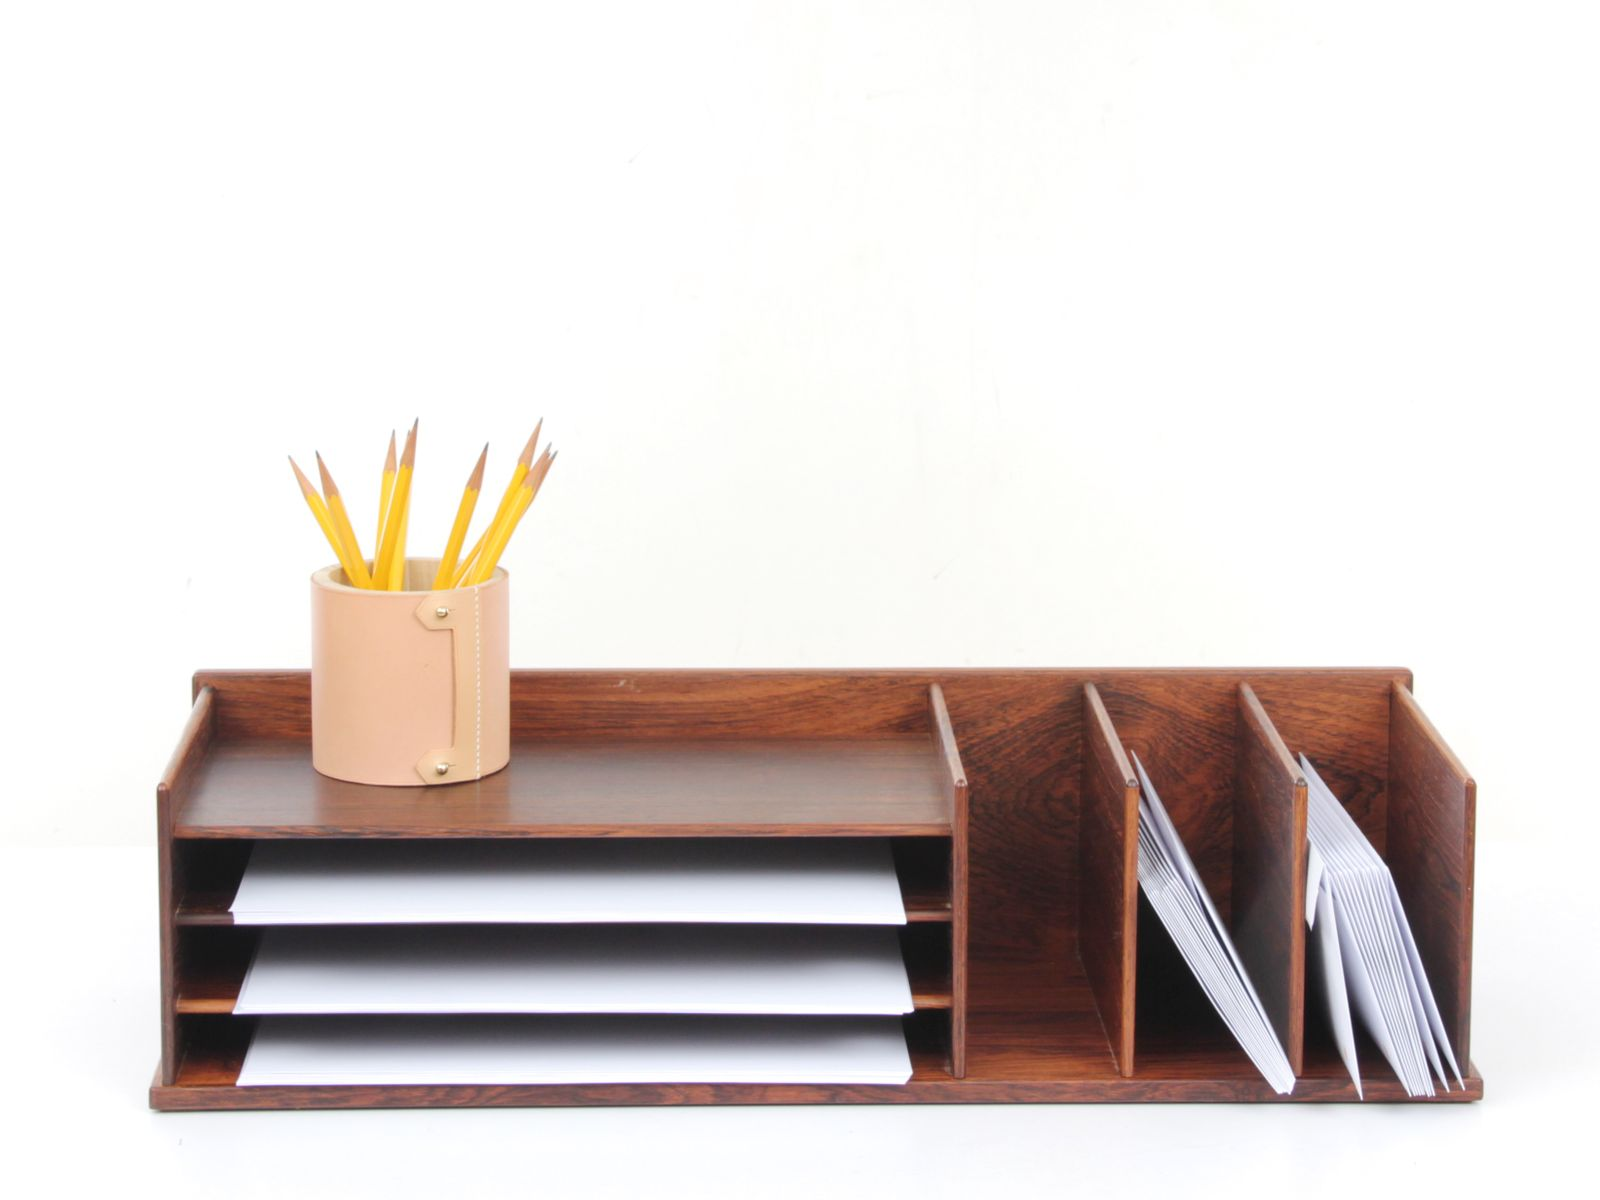 previous. midcentury modern desk top organizer in rio rosewood from georg